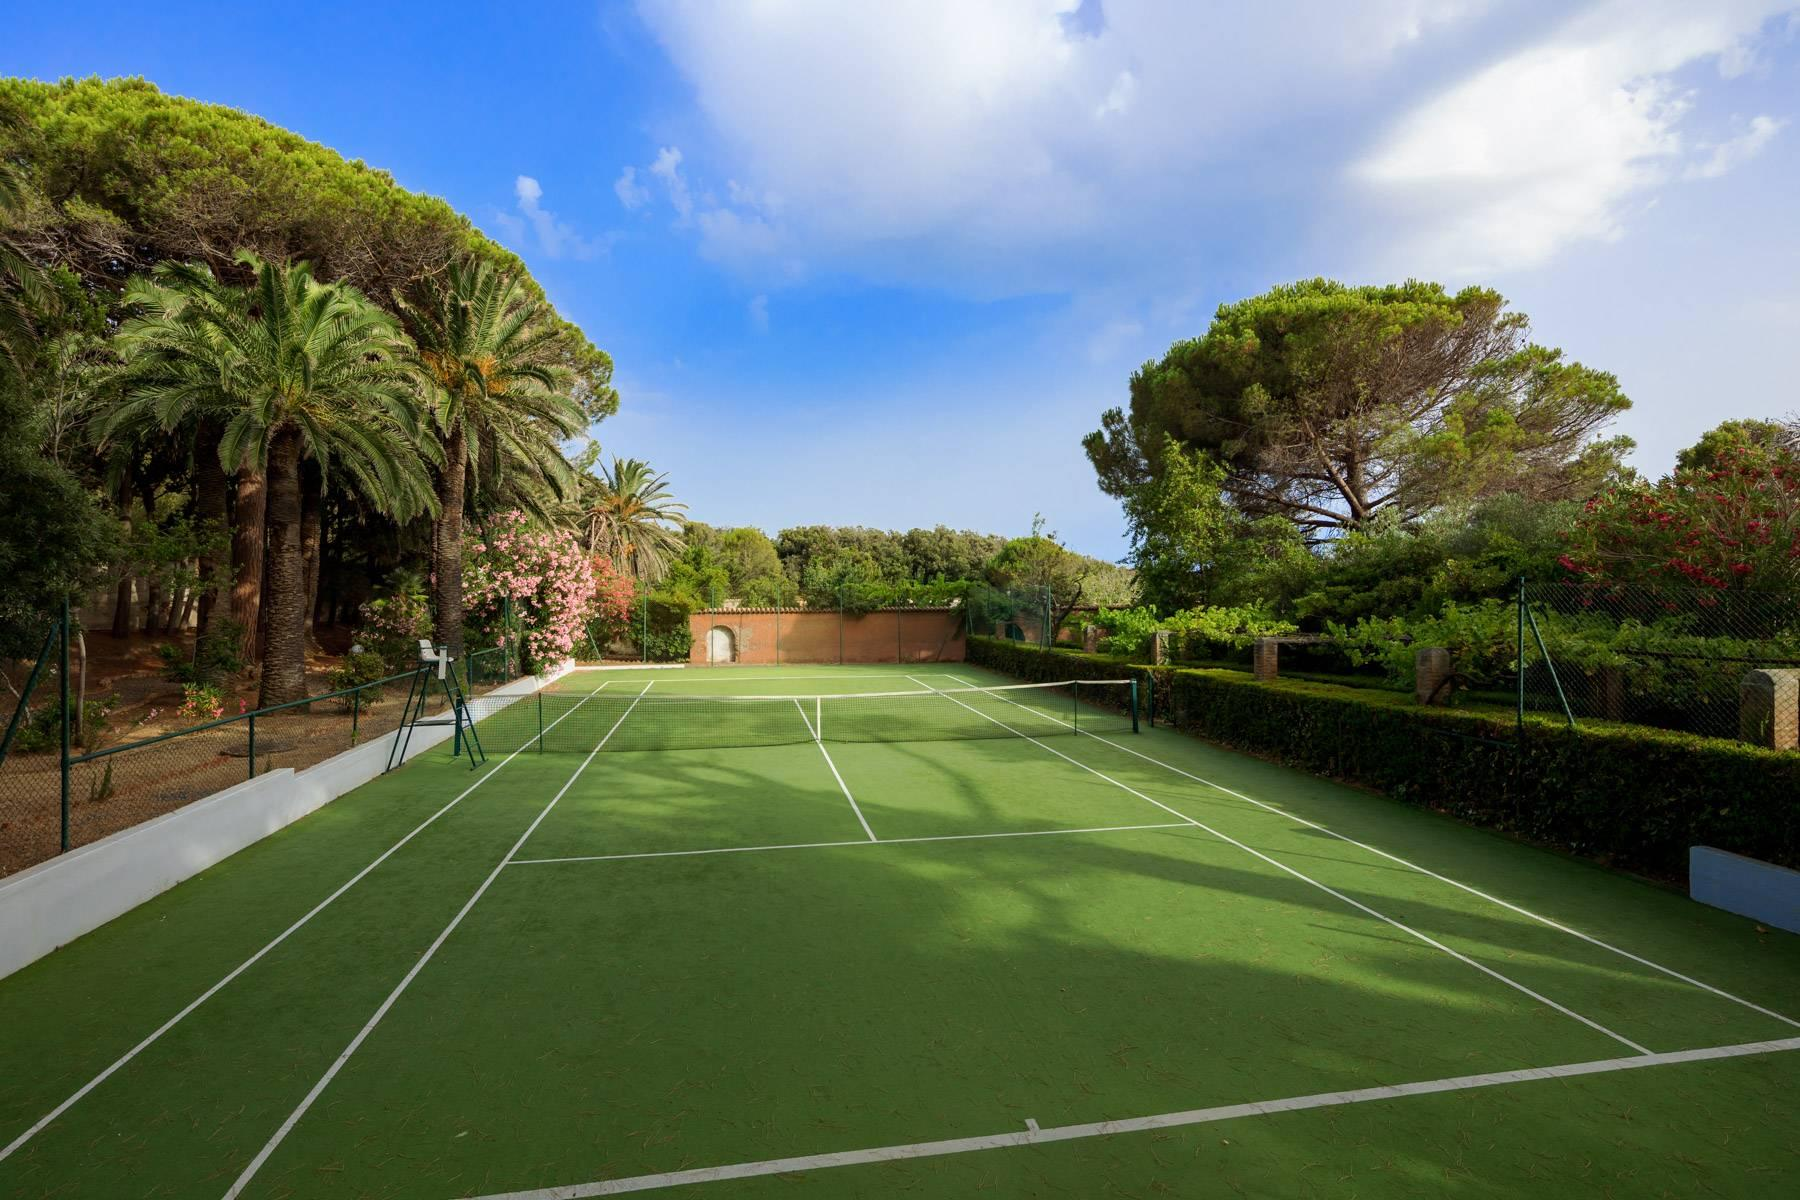 Apartment with private garden and access to the sea in a historic villa - 15